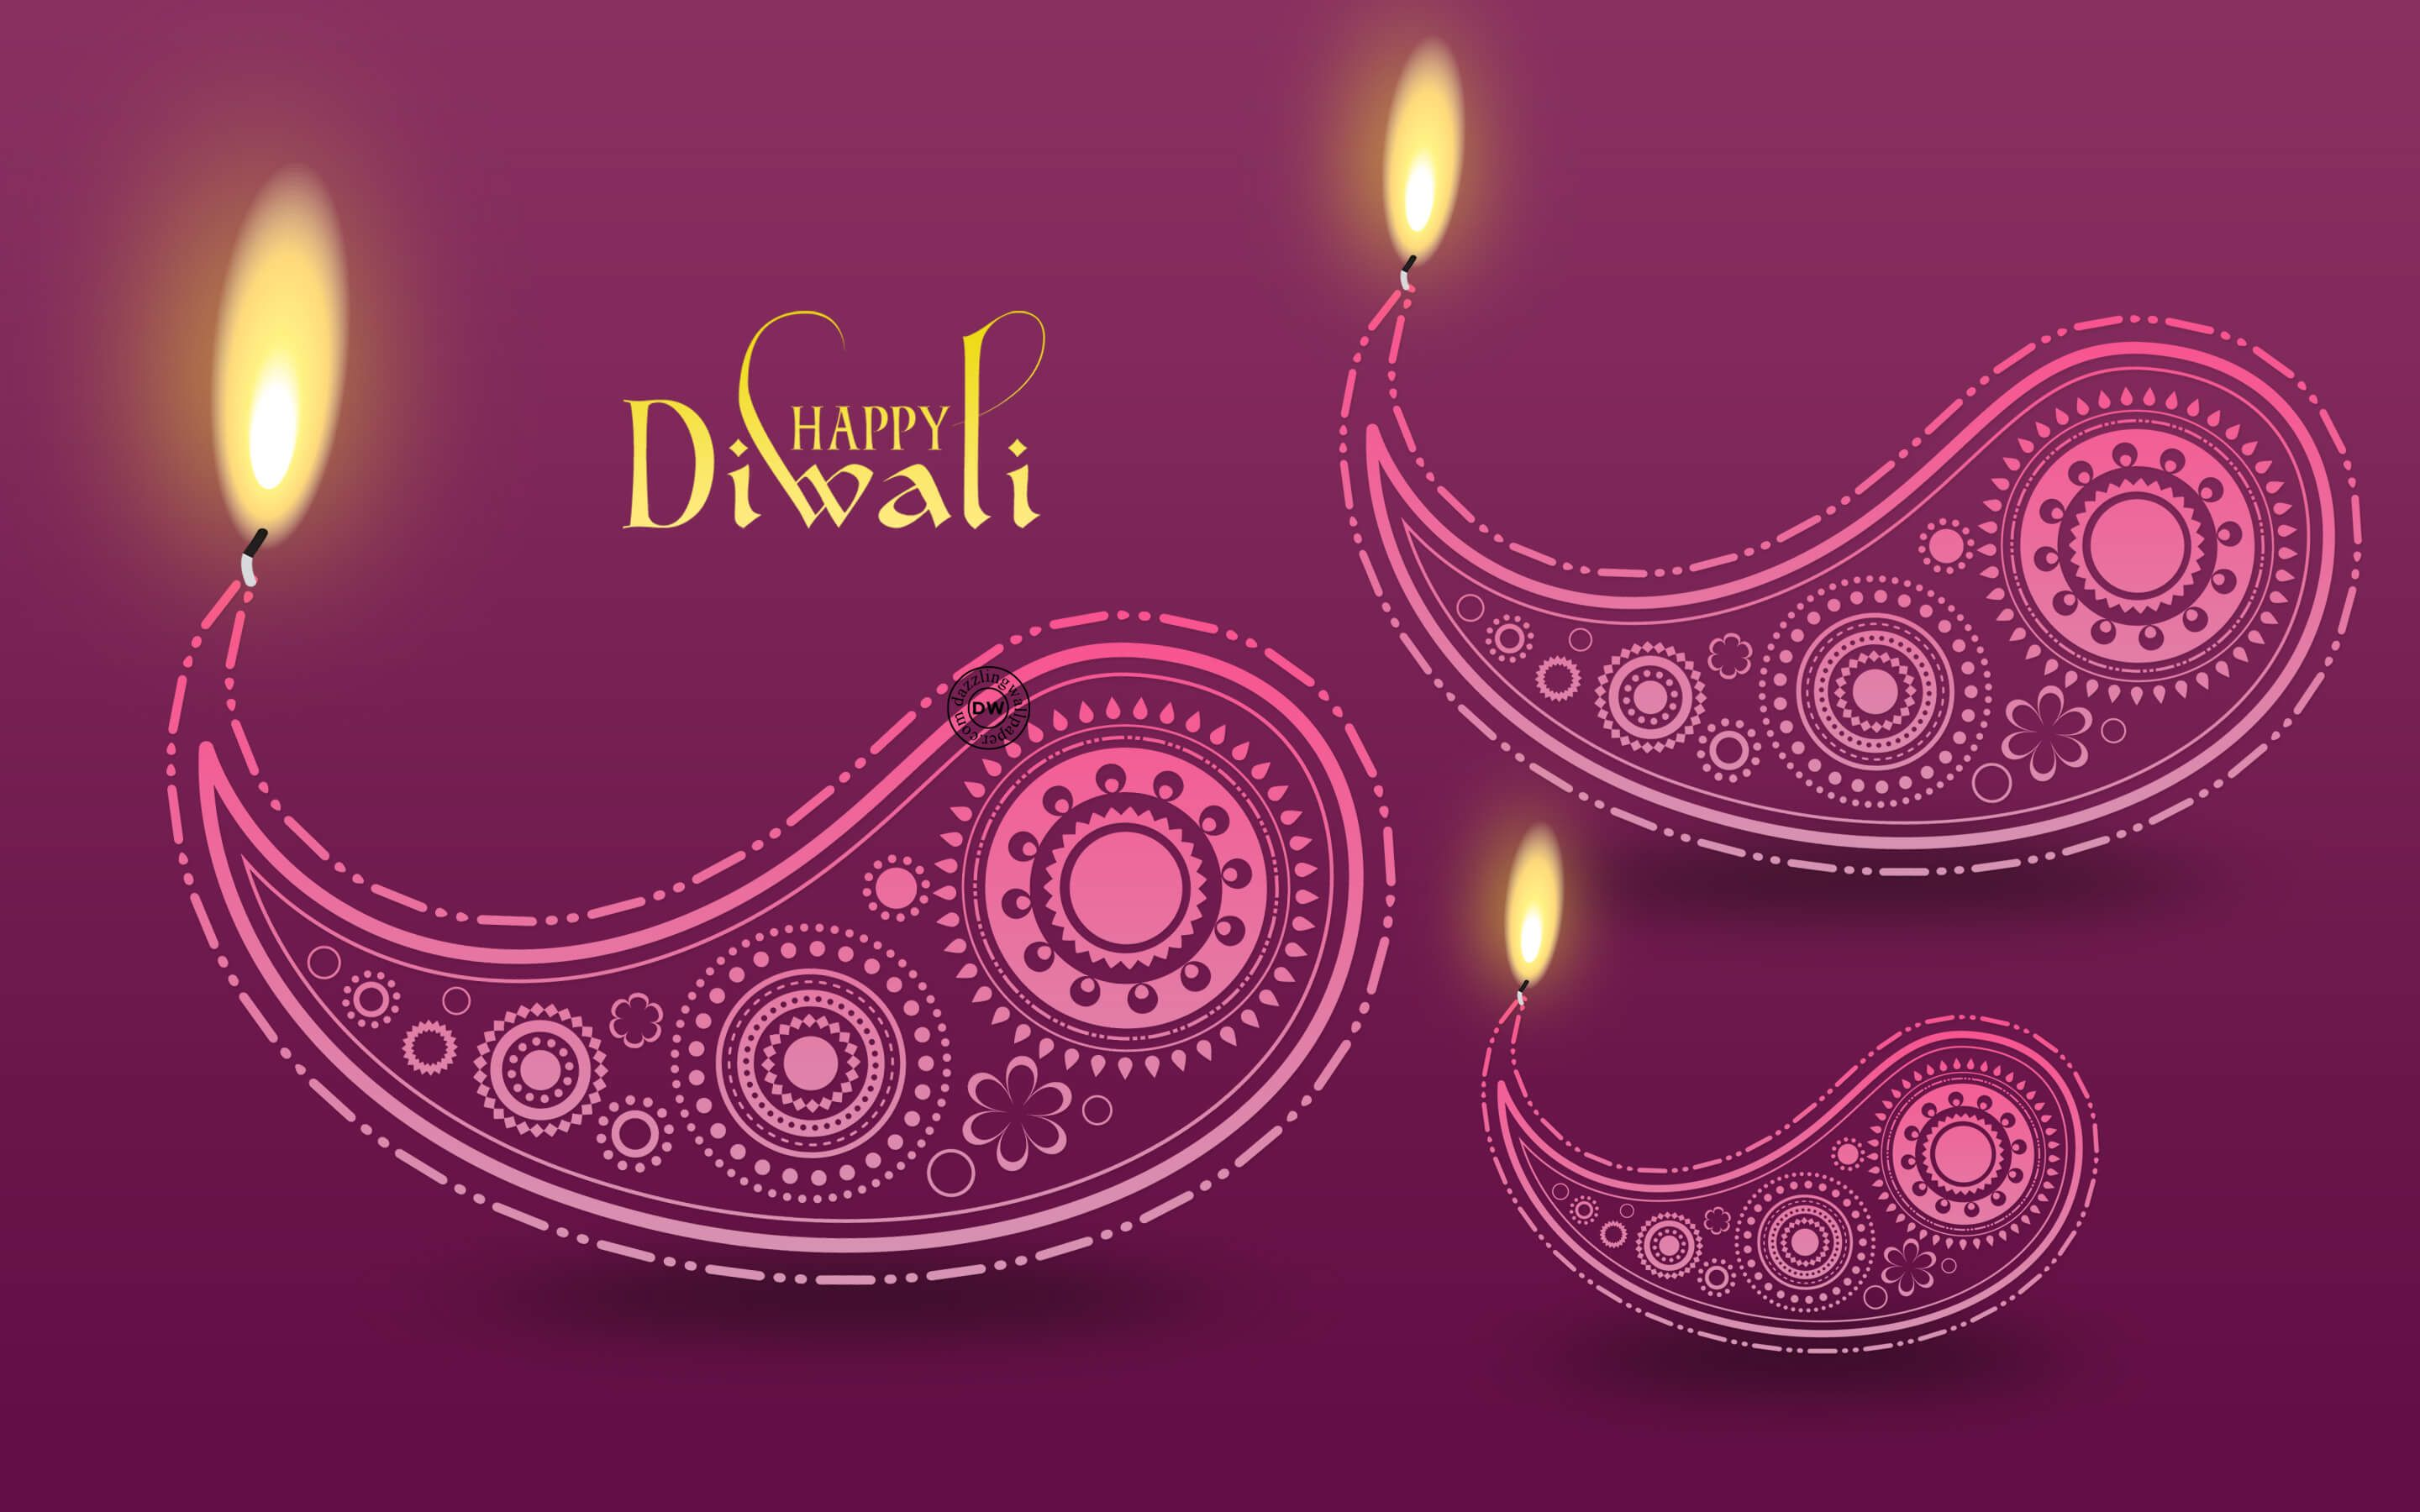 Diwali Is The Hindu Festival Of Lights It Is One Of The Hindu Festivals In India Which Is Celebrated Diwali Greetings Diwali Pictures Happy Diwali Wallpapers Happy diwali hd wallpaper download